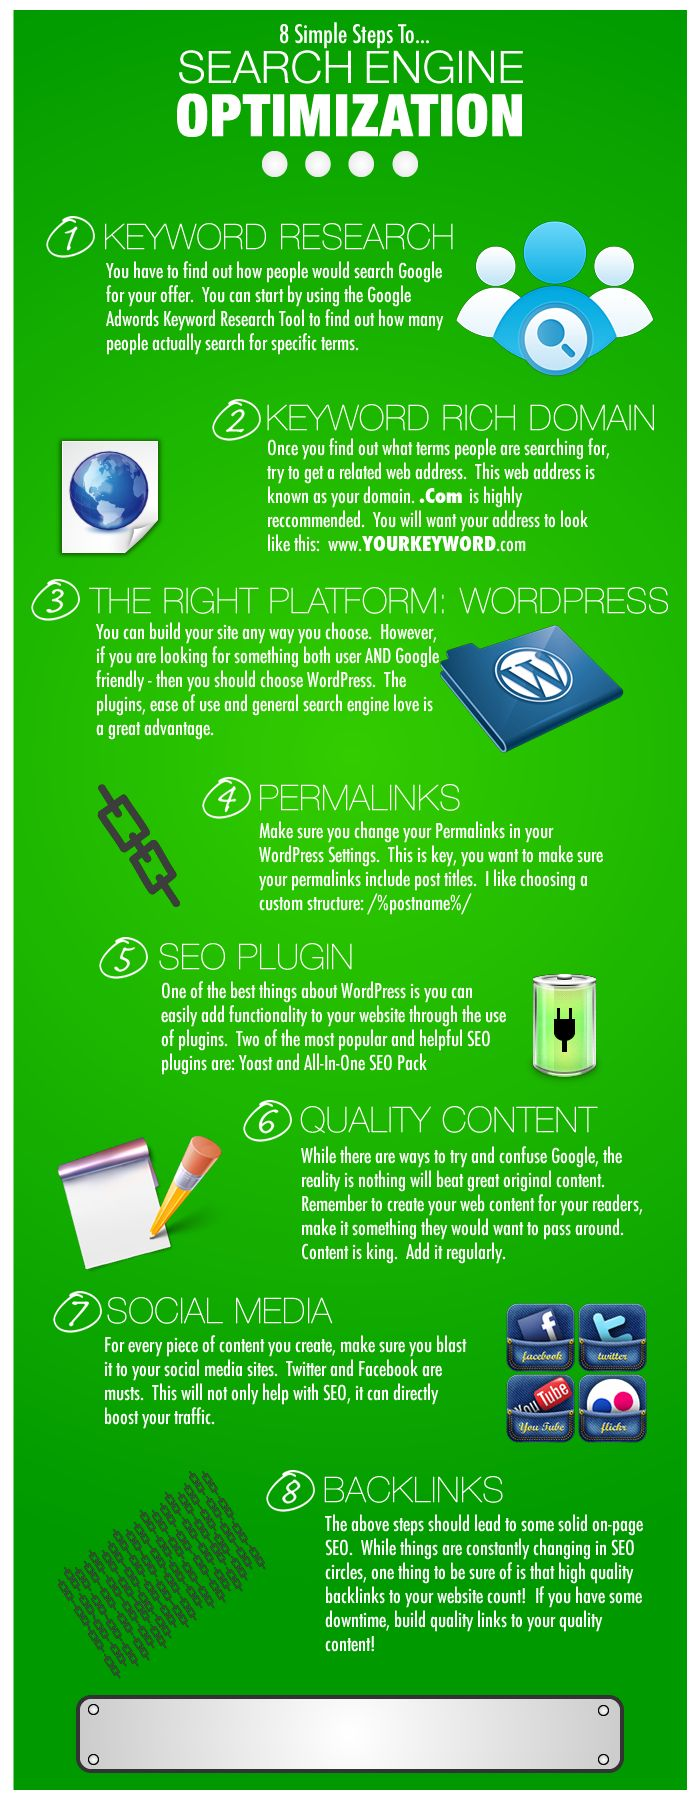 Steps in the process of Search Engine Optimization. Always start with research!